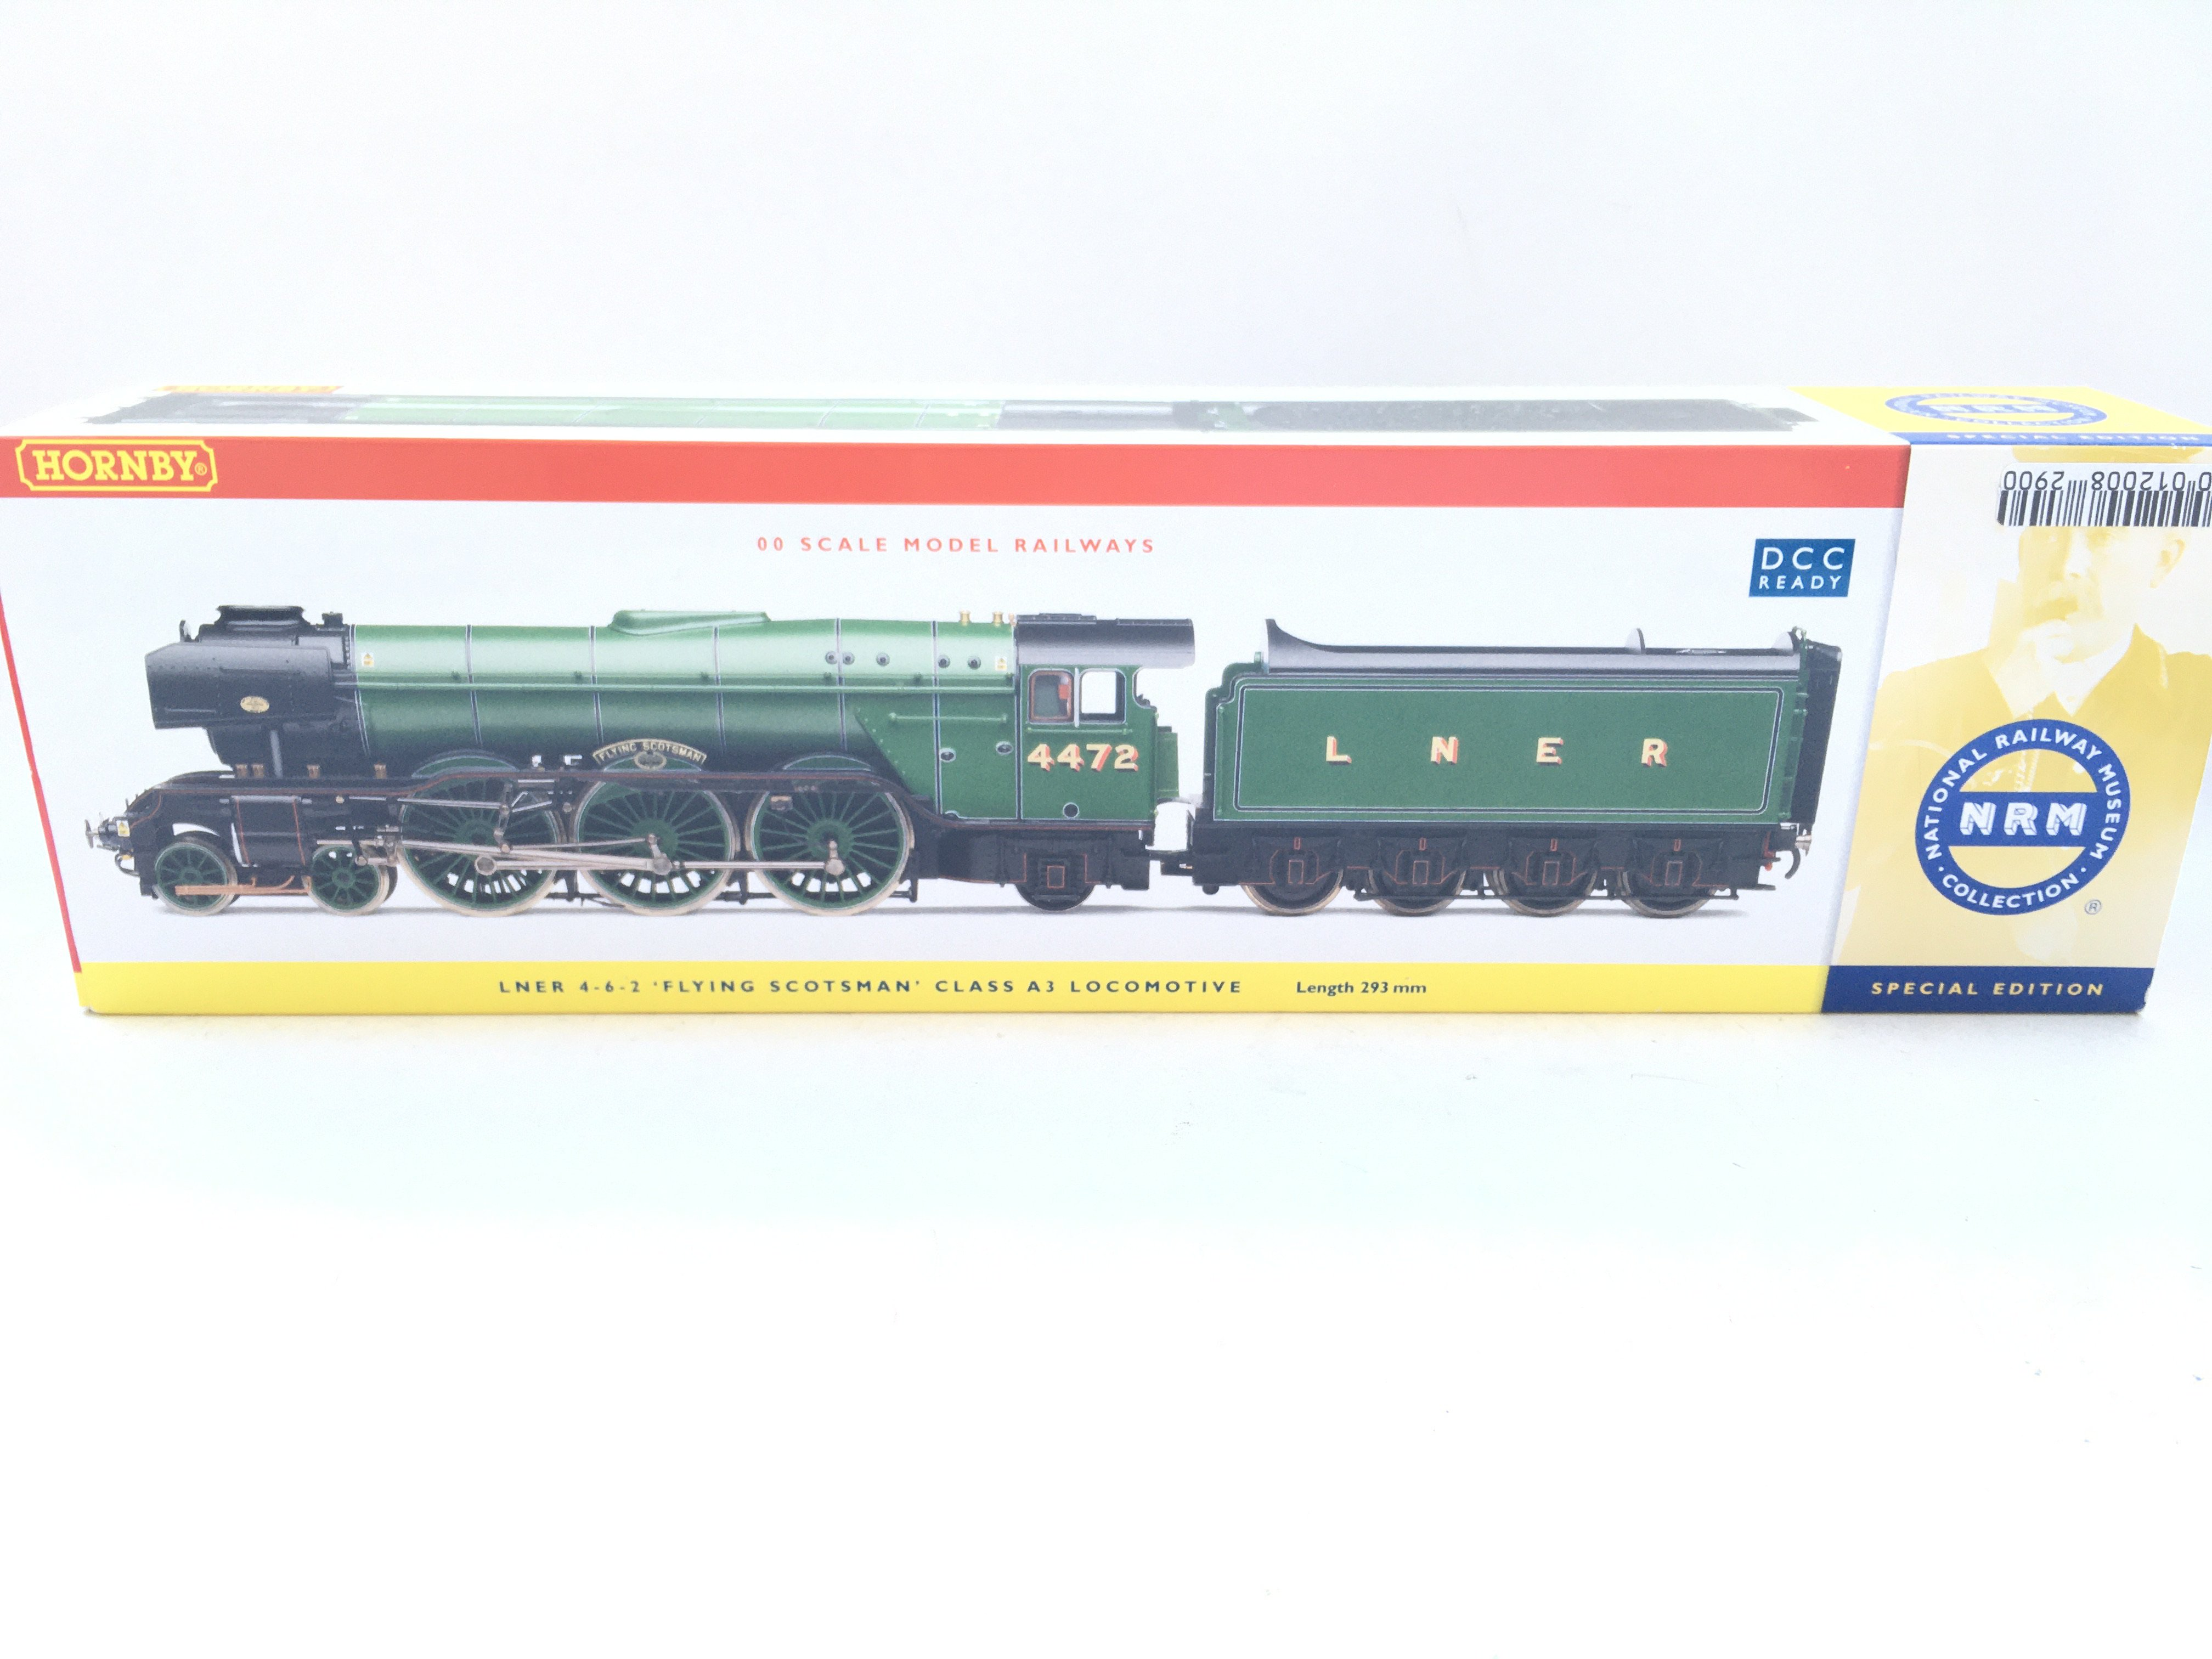 A Boxed Hornby Flying Scotsman #R2441. DCC Ready. - Image 3 of 3